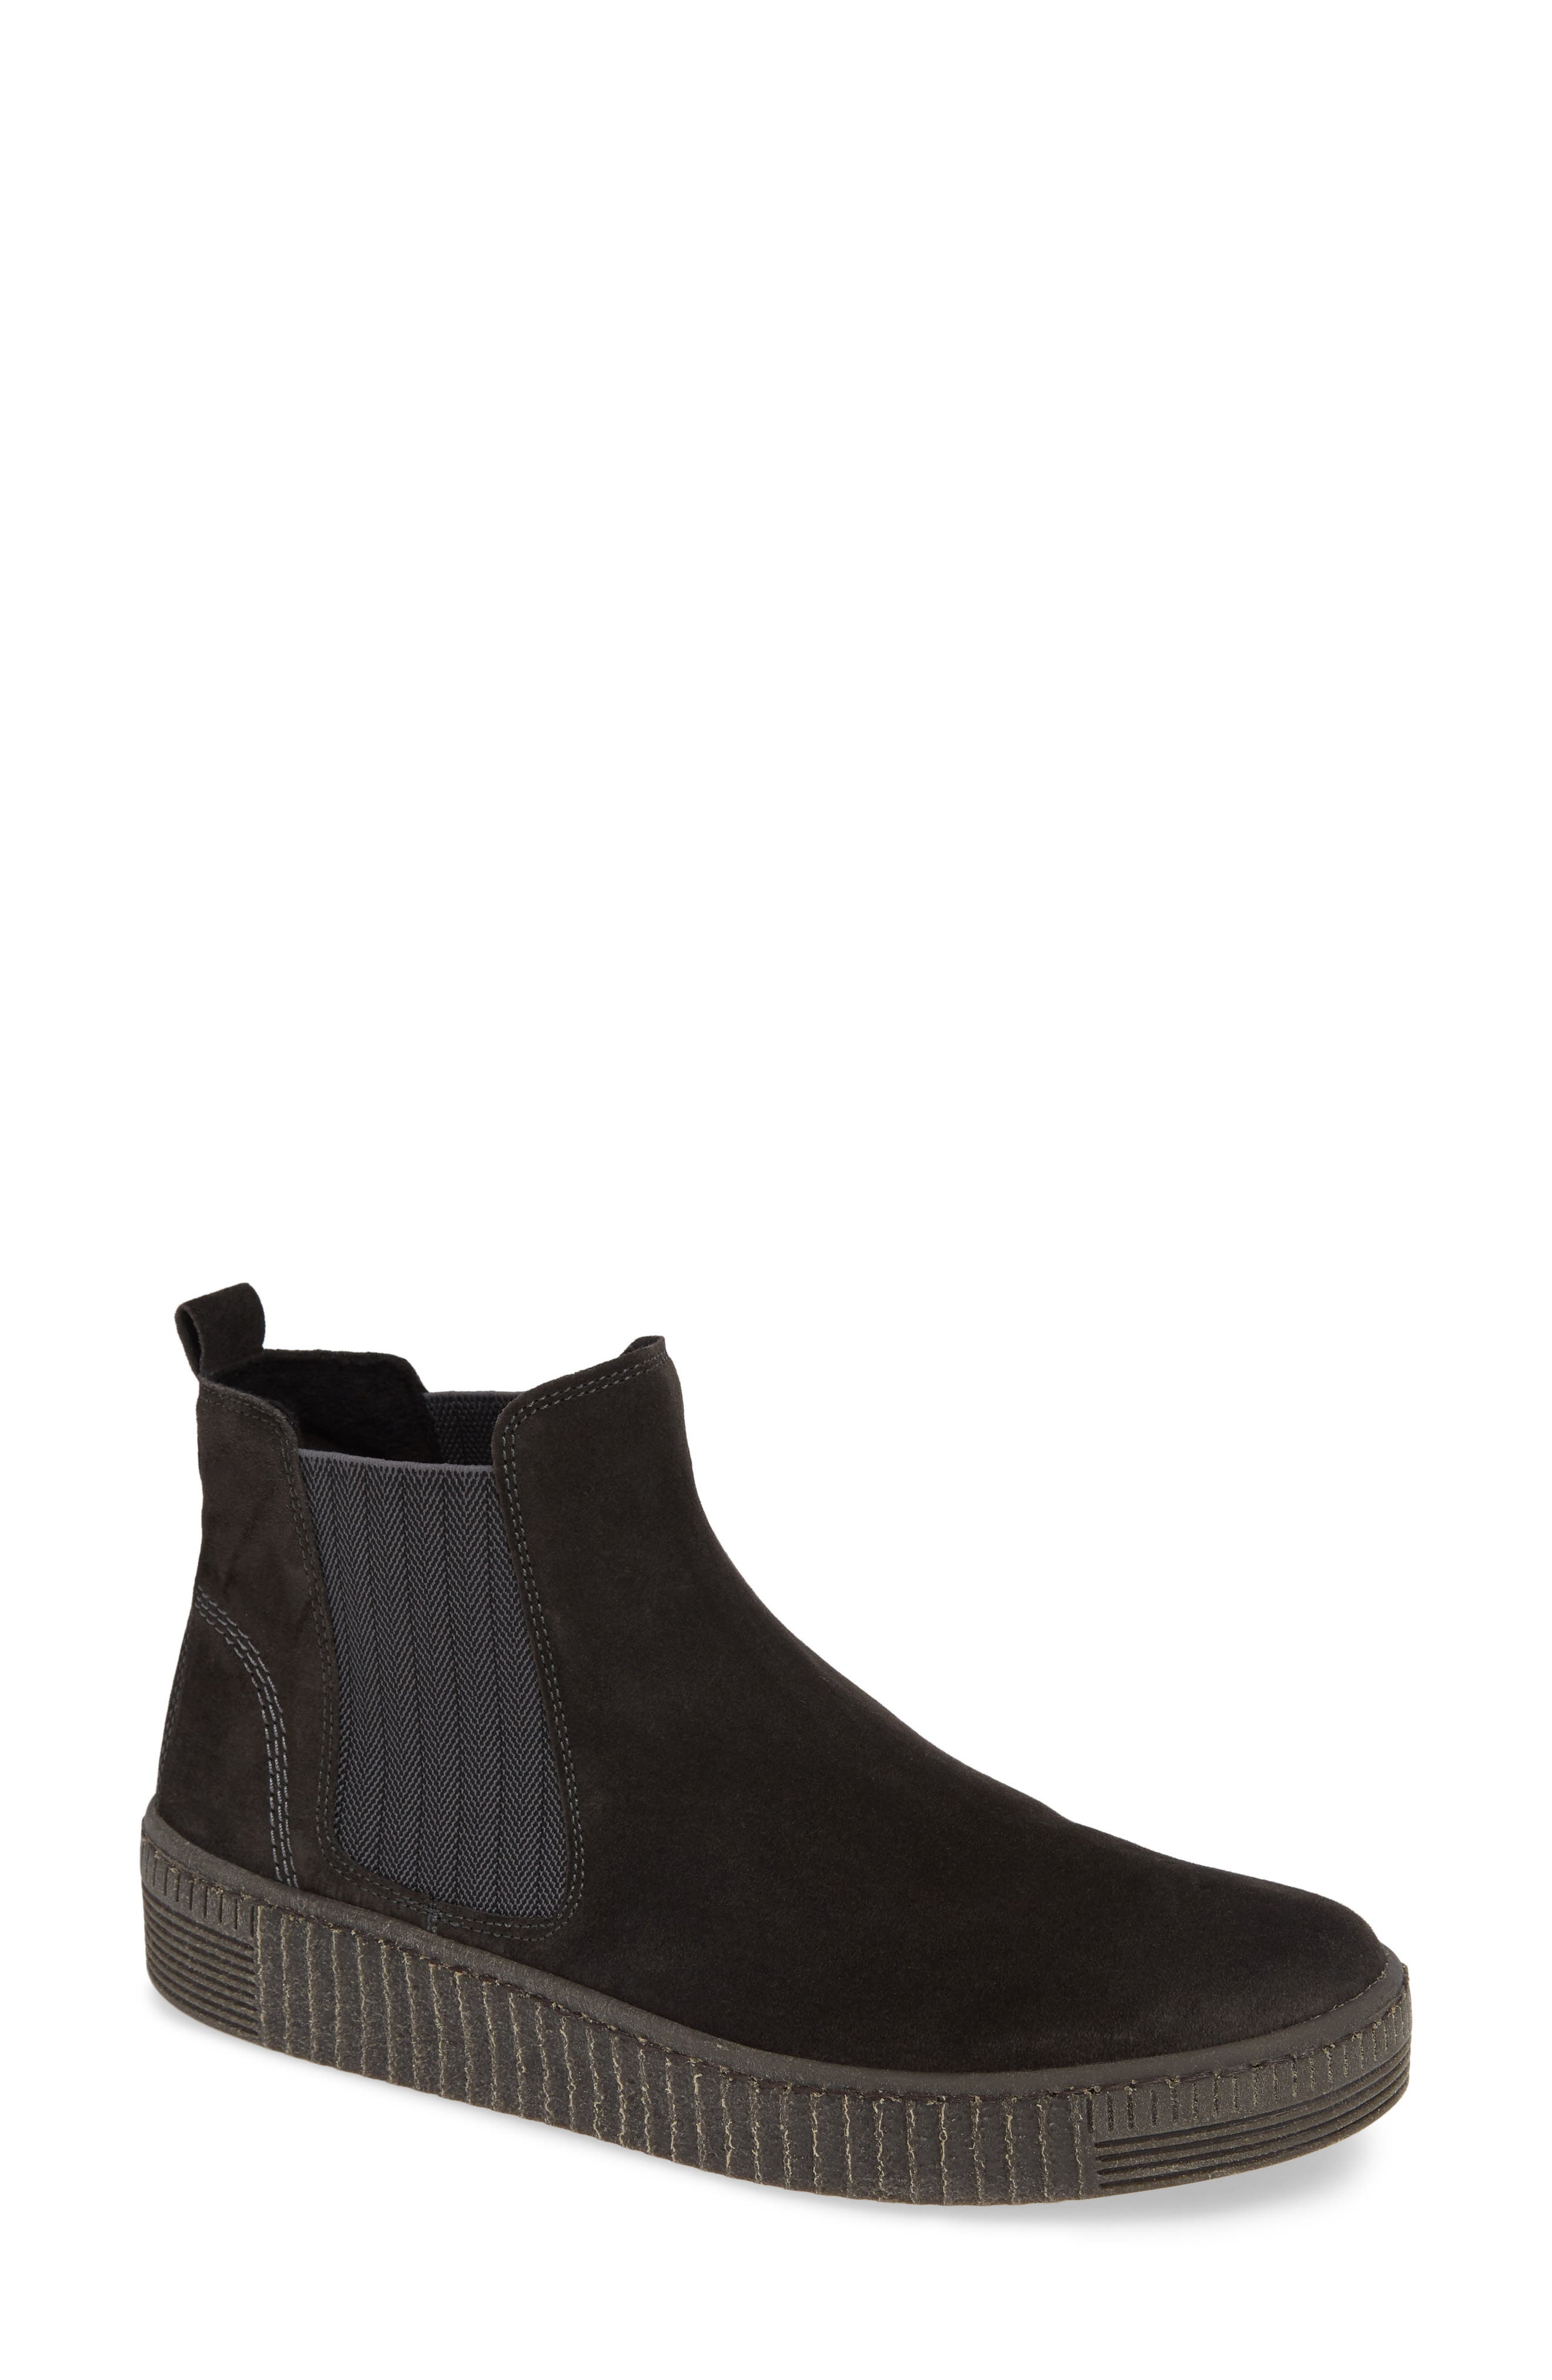 Chelsea Sneaker,                             Main thumbnail 1, color,                             PEPPER SUEDE